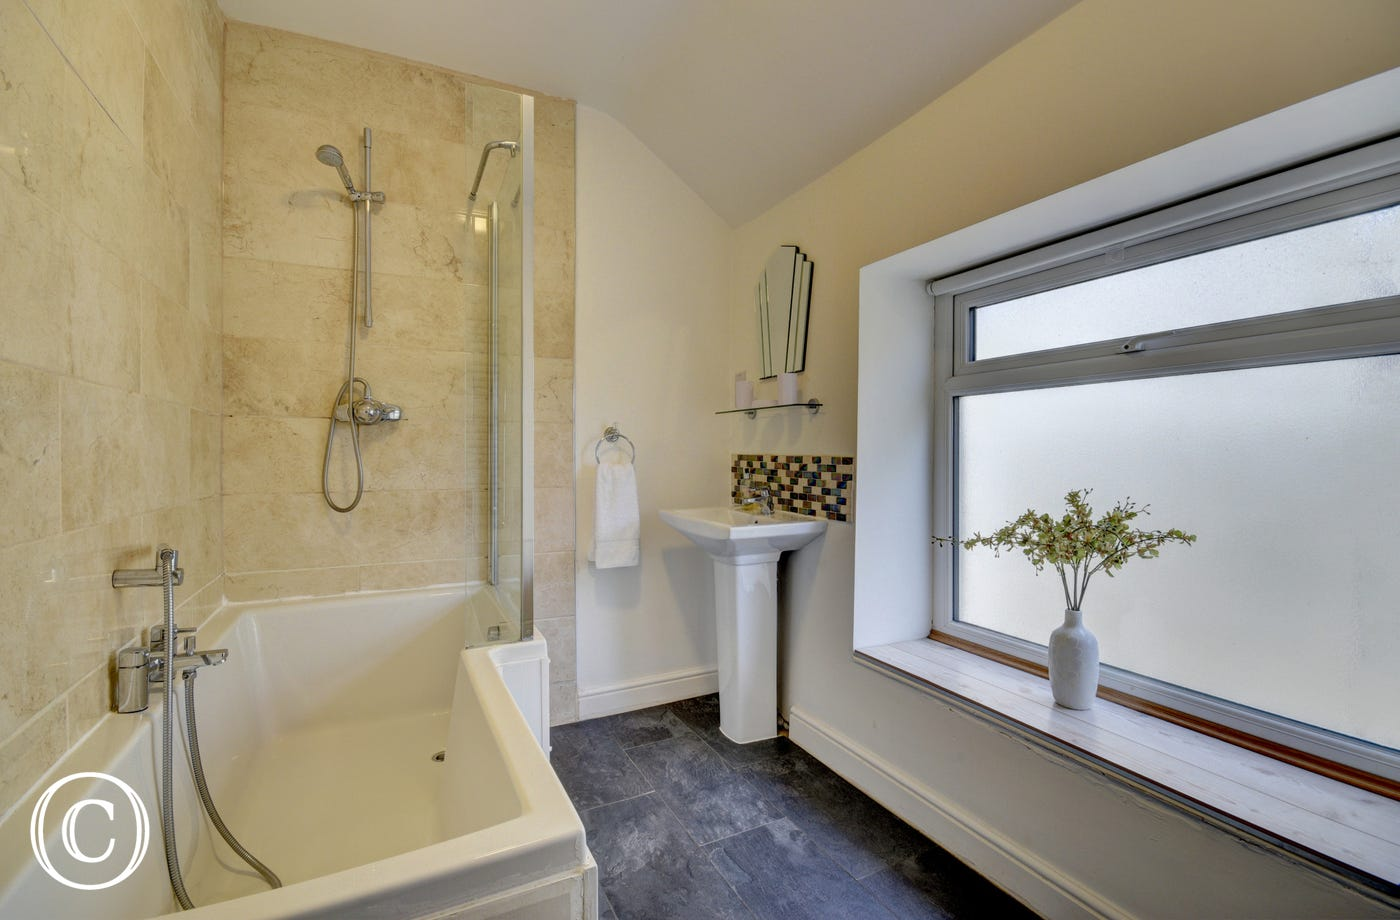 The contemporary family bathroom contains a bath with shower overhead and this room has a heated ceramic tiled floor